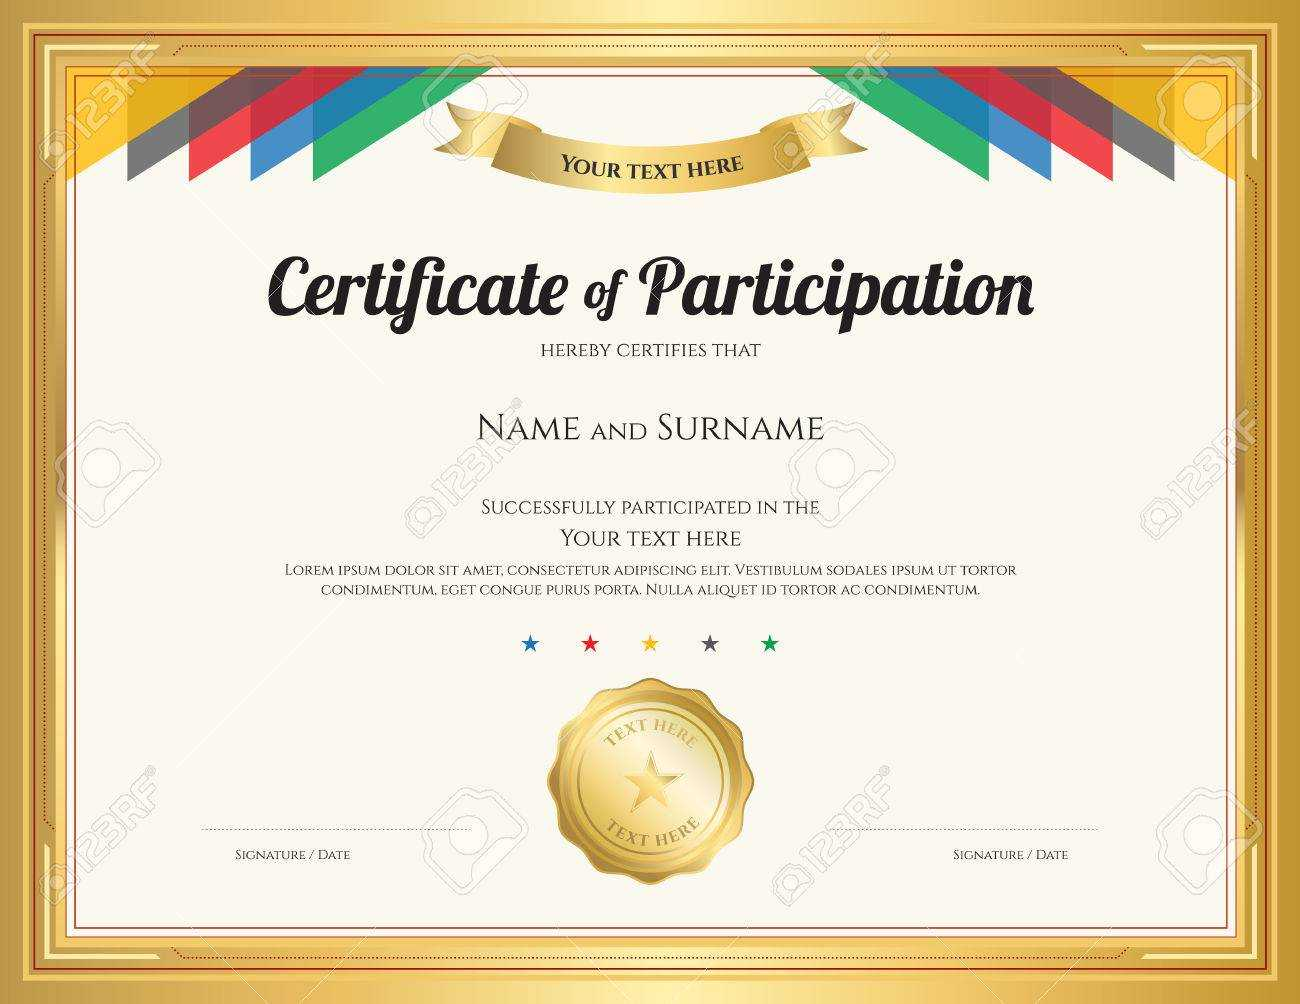 Certificate Of Participation Template With Gold Border And Colorful.. With Regard To Participation Certificate Templates Free Download